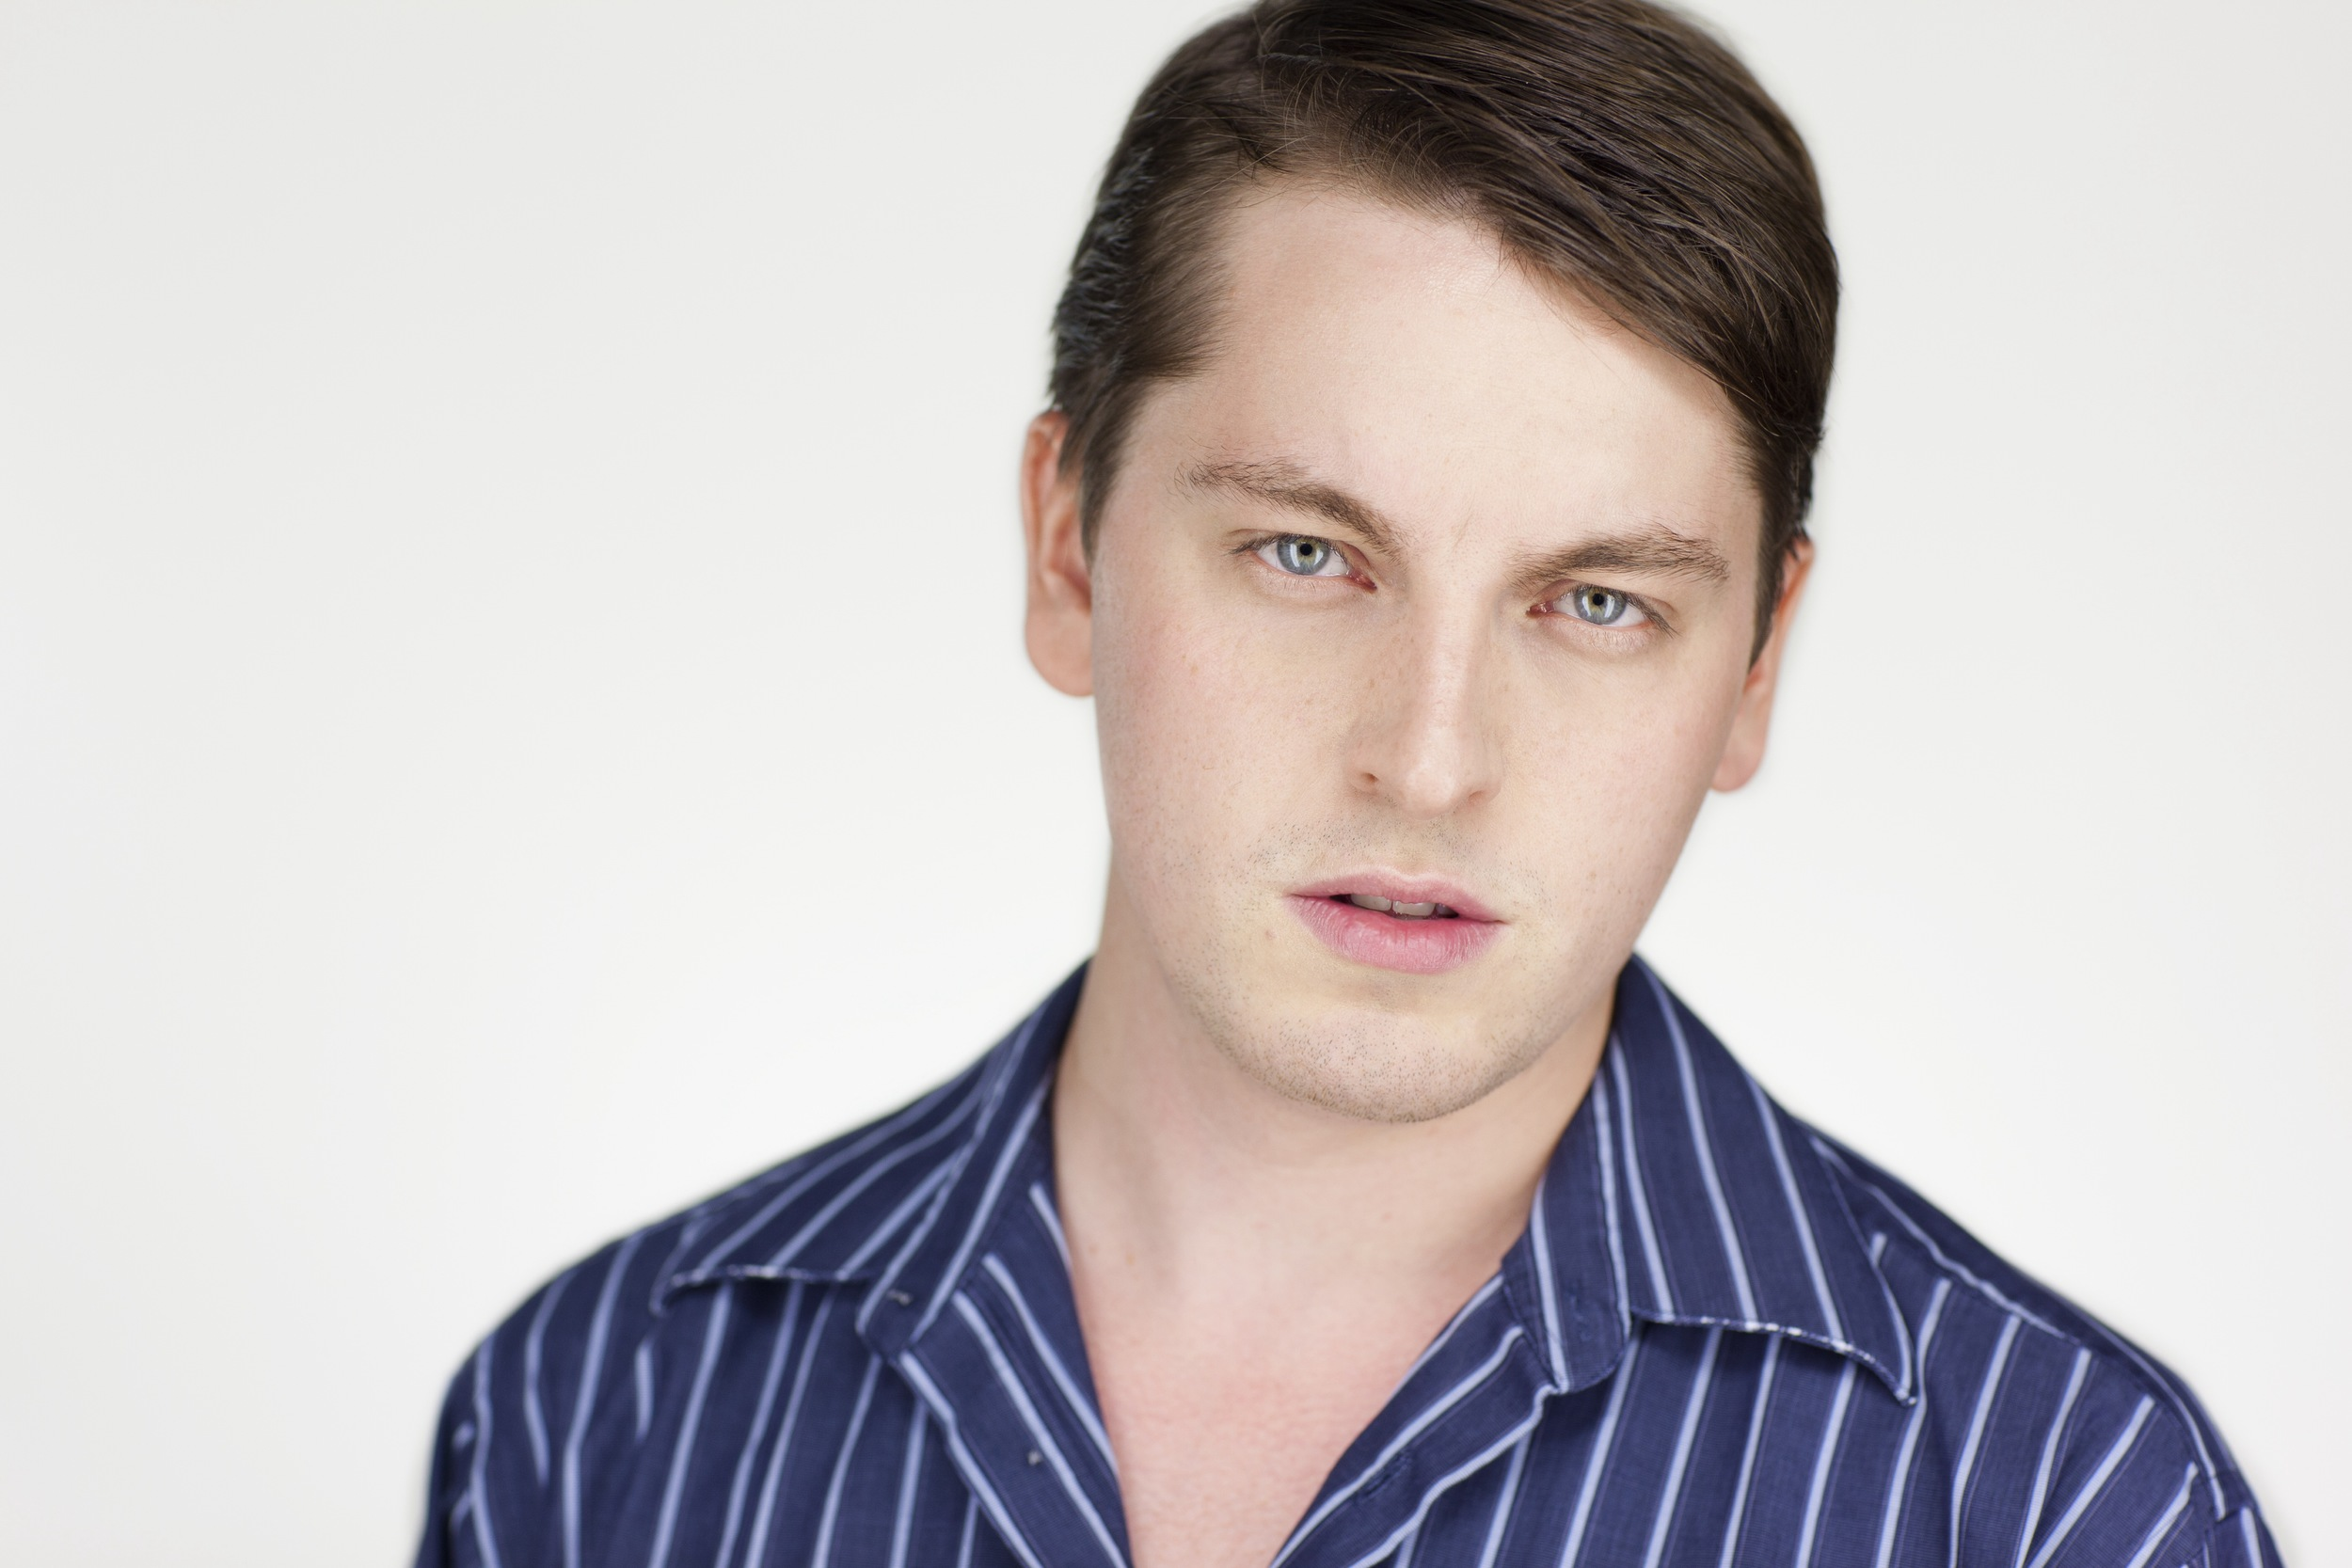 Sean Newman plays Michael, a professional model maker.